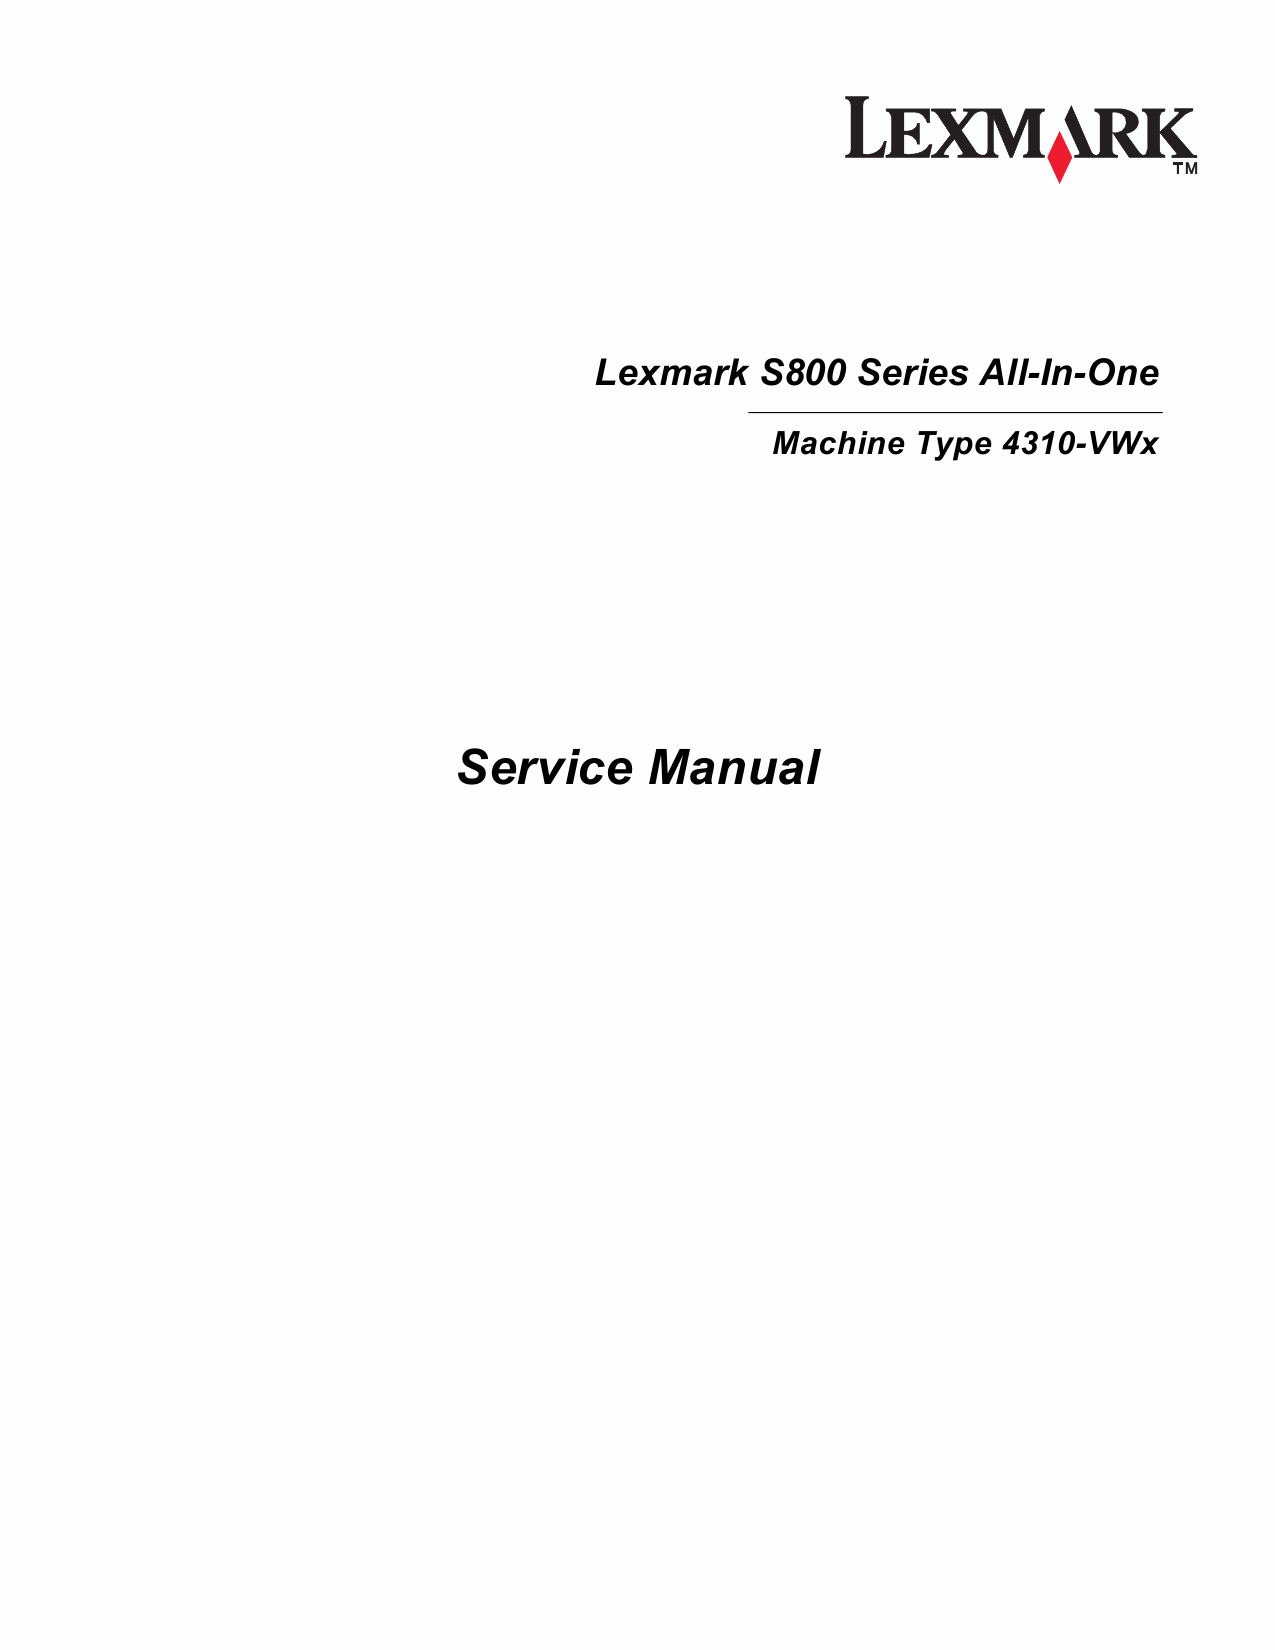 Lexmark All-In-One S800 4310 Service Manual-1